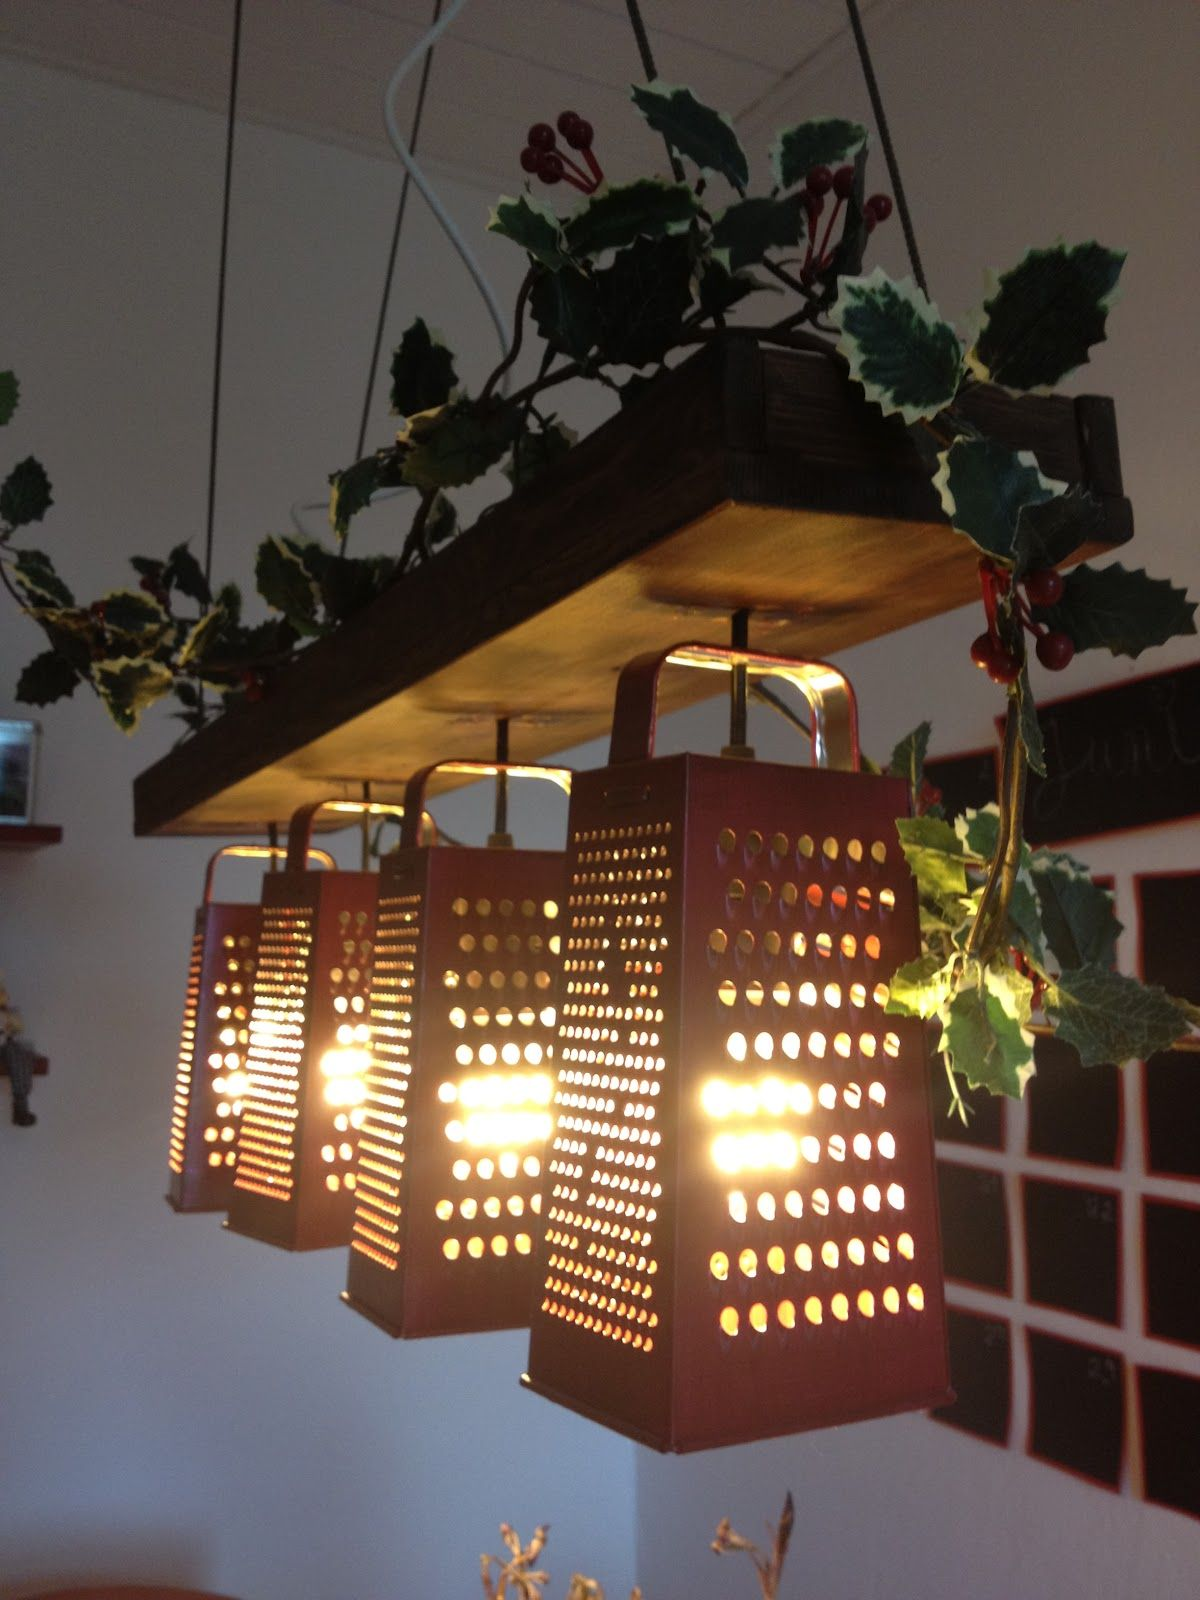 Lampe Kreativ Top 10 Unusual Diy Upcycled Light Fixtures Ideen Pinterest